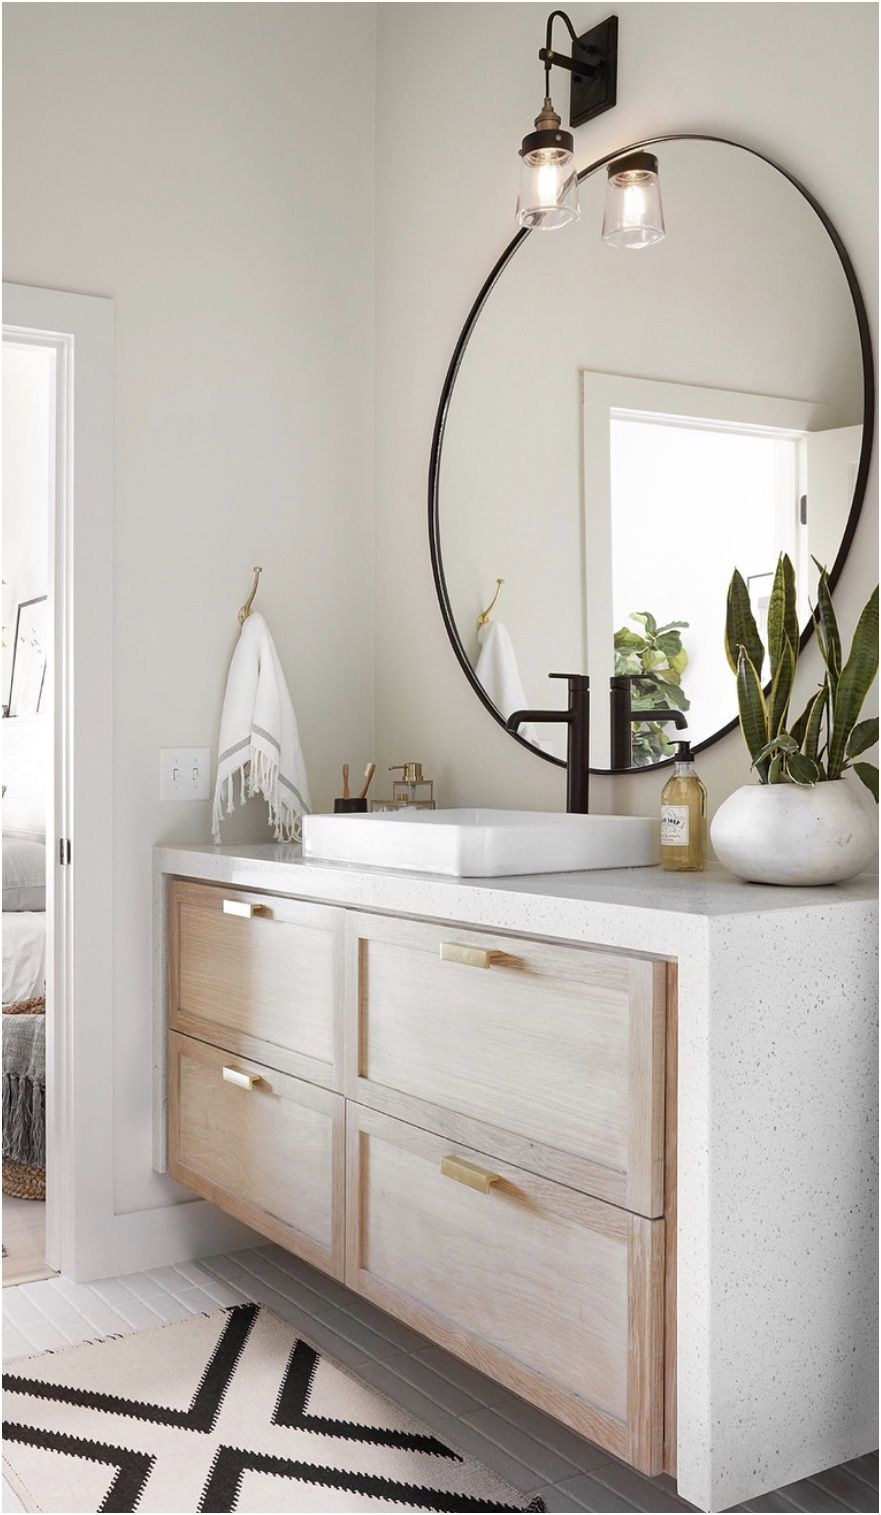 New Frames for Mirrors In Bathrooms